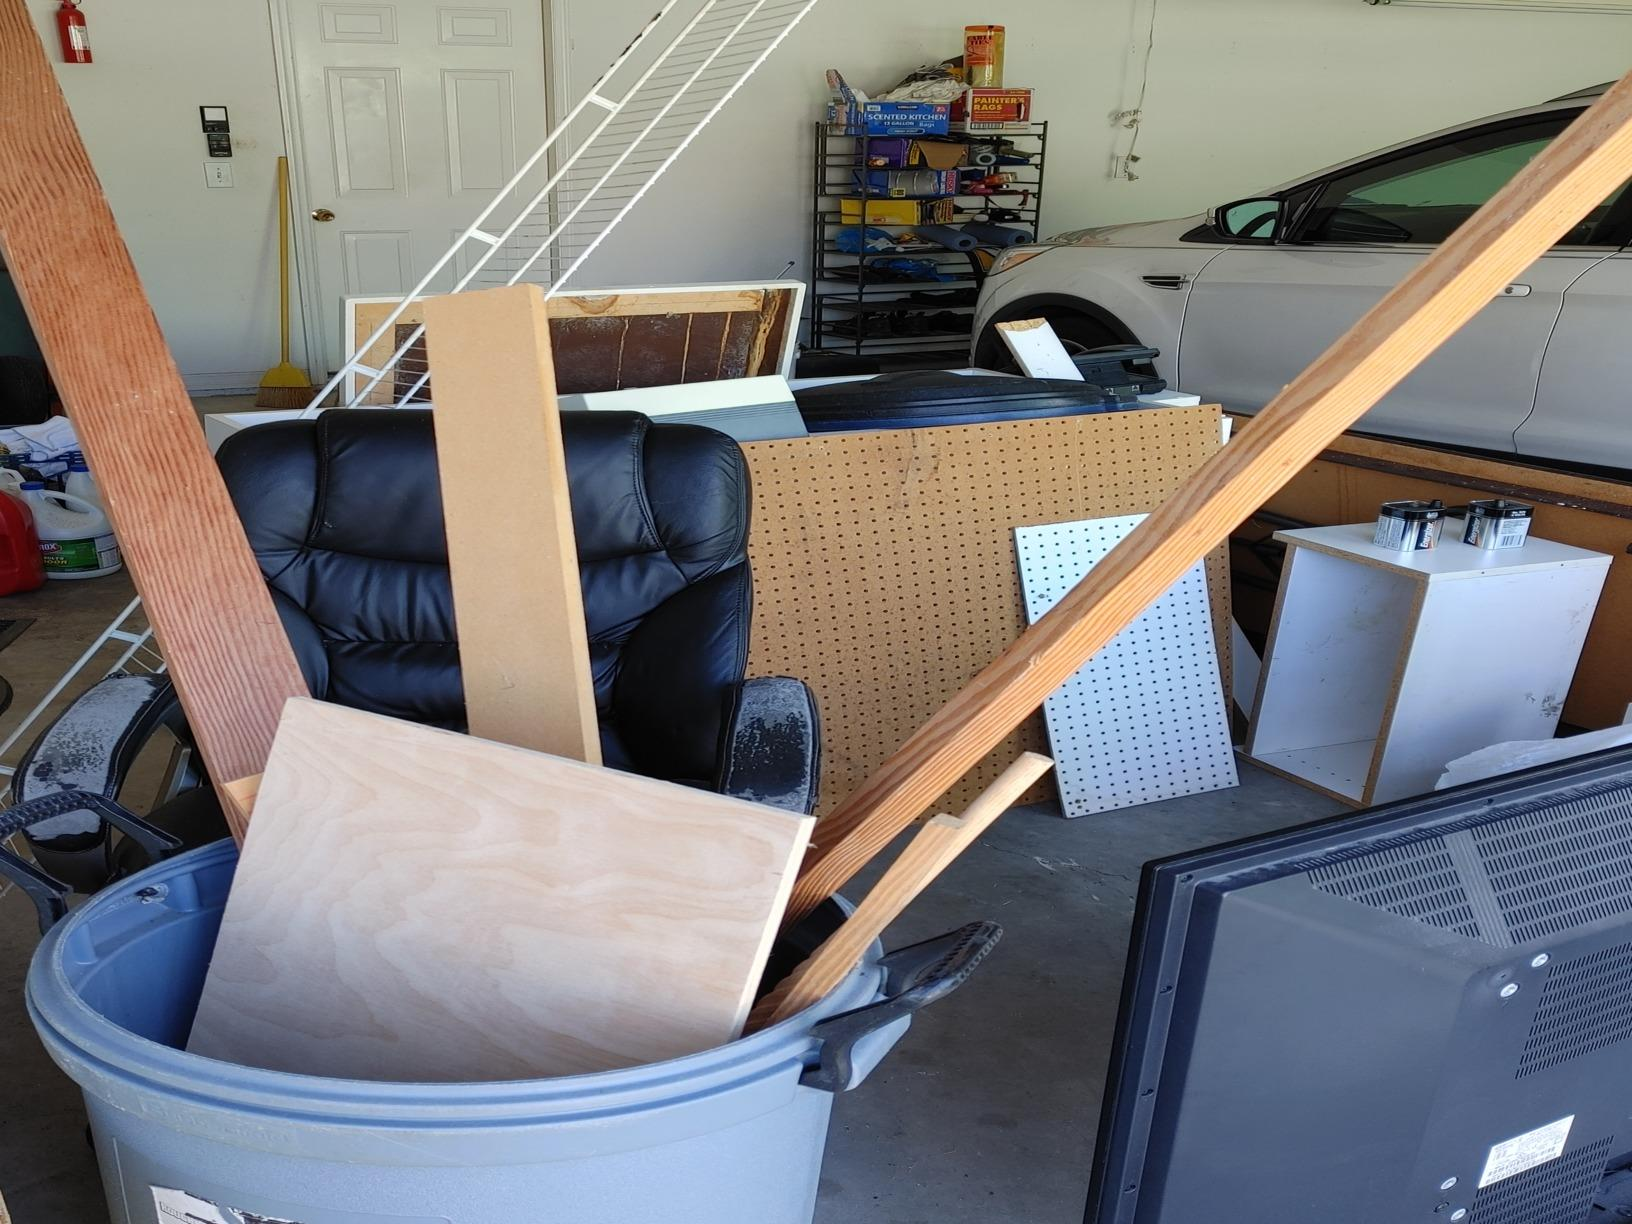 Garage cleanup in Wesley Chapel, FL! - Before Photo